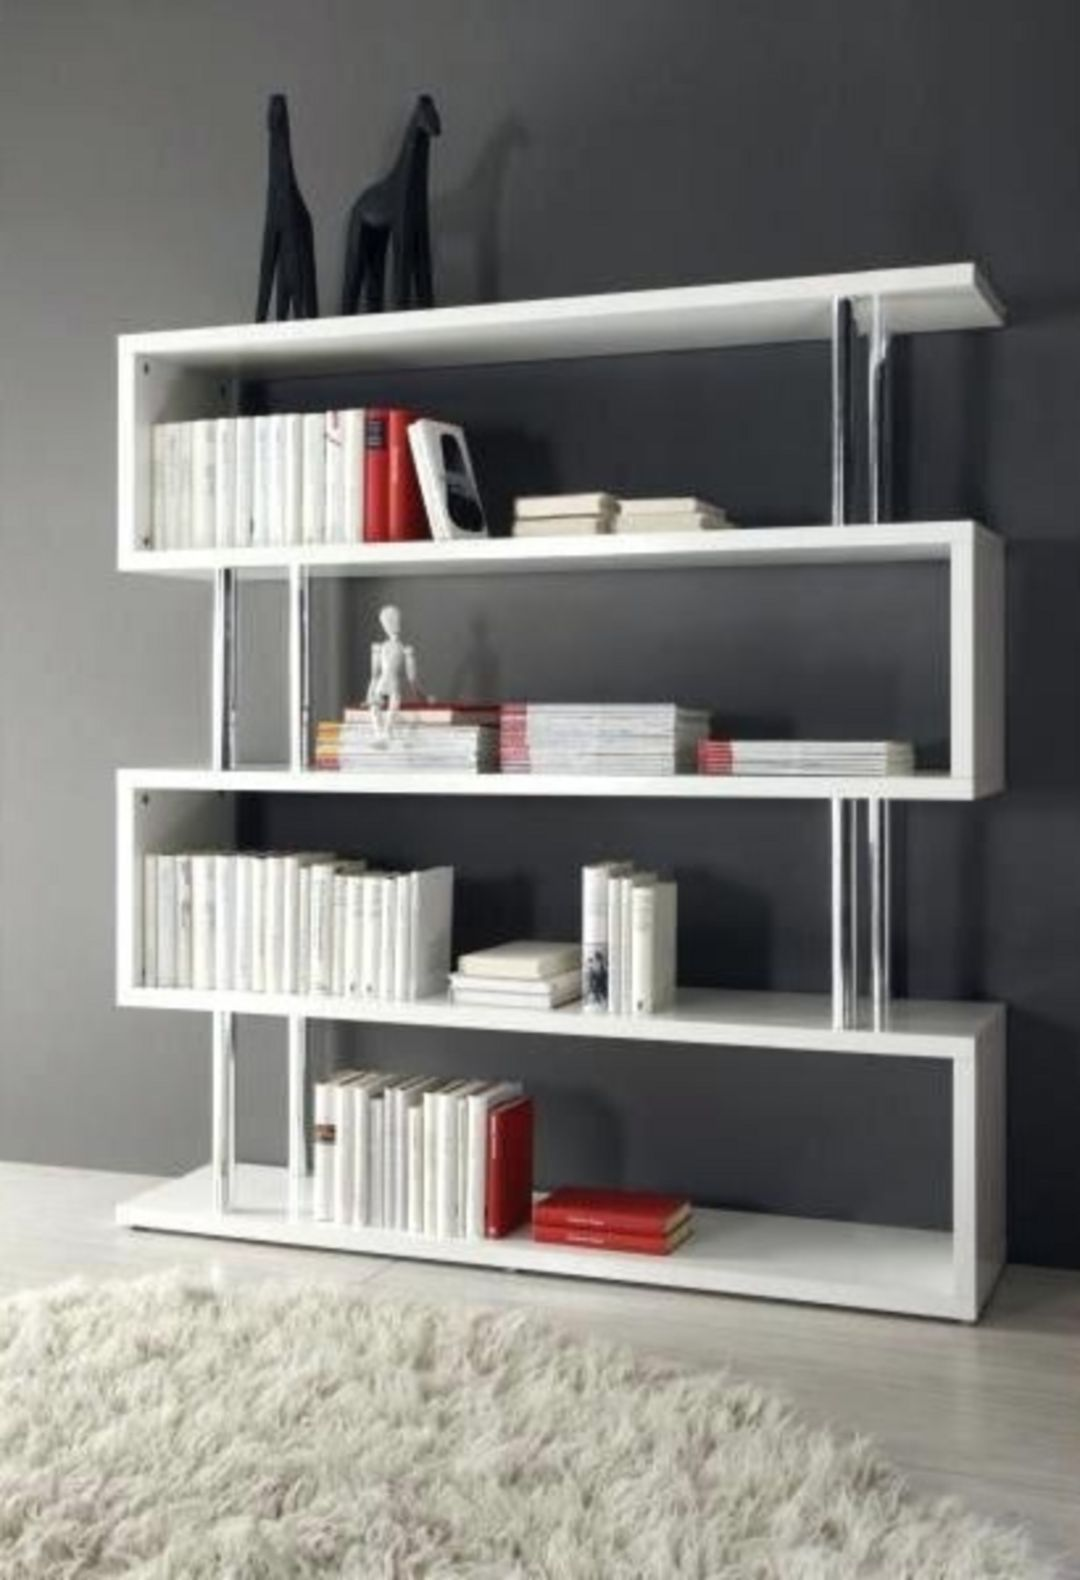 35 Unique Minimalist Bookshelf Designs To Keep Your Book Collection Teracee Minimalist Bookshelves Bookshelf Design Modern Bookcase